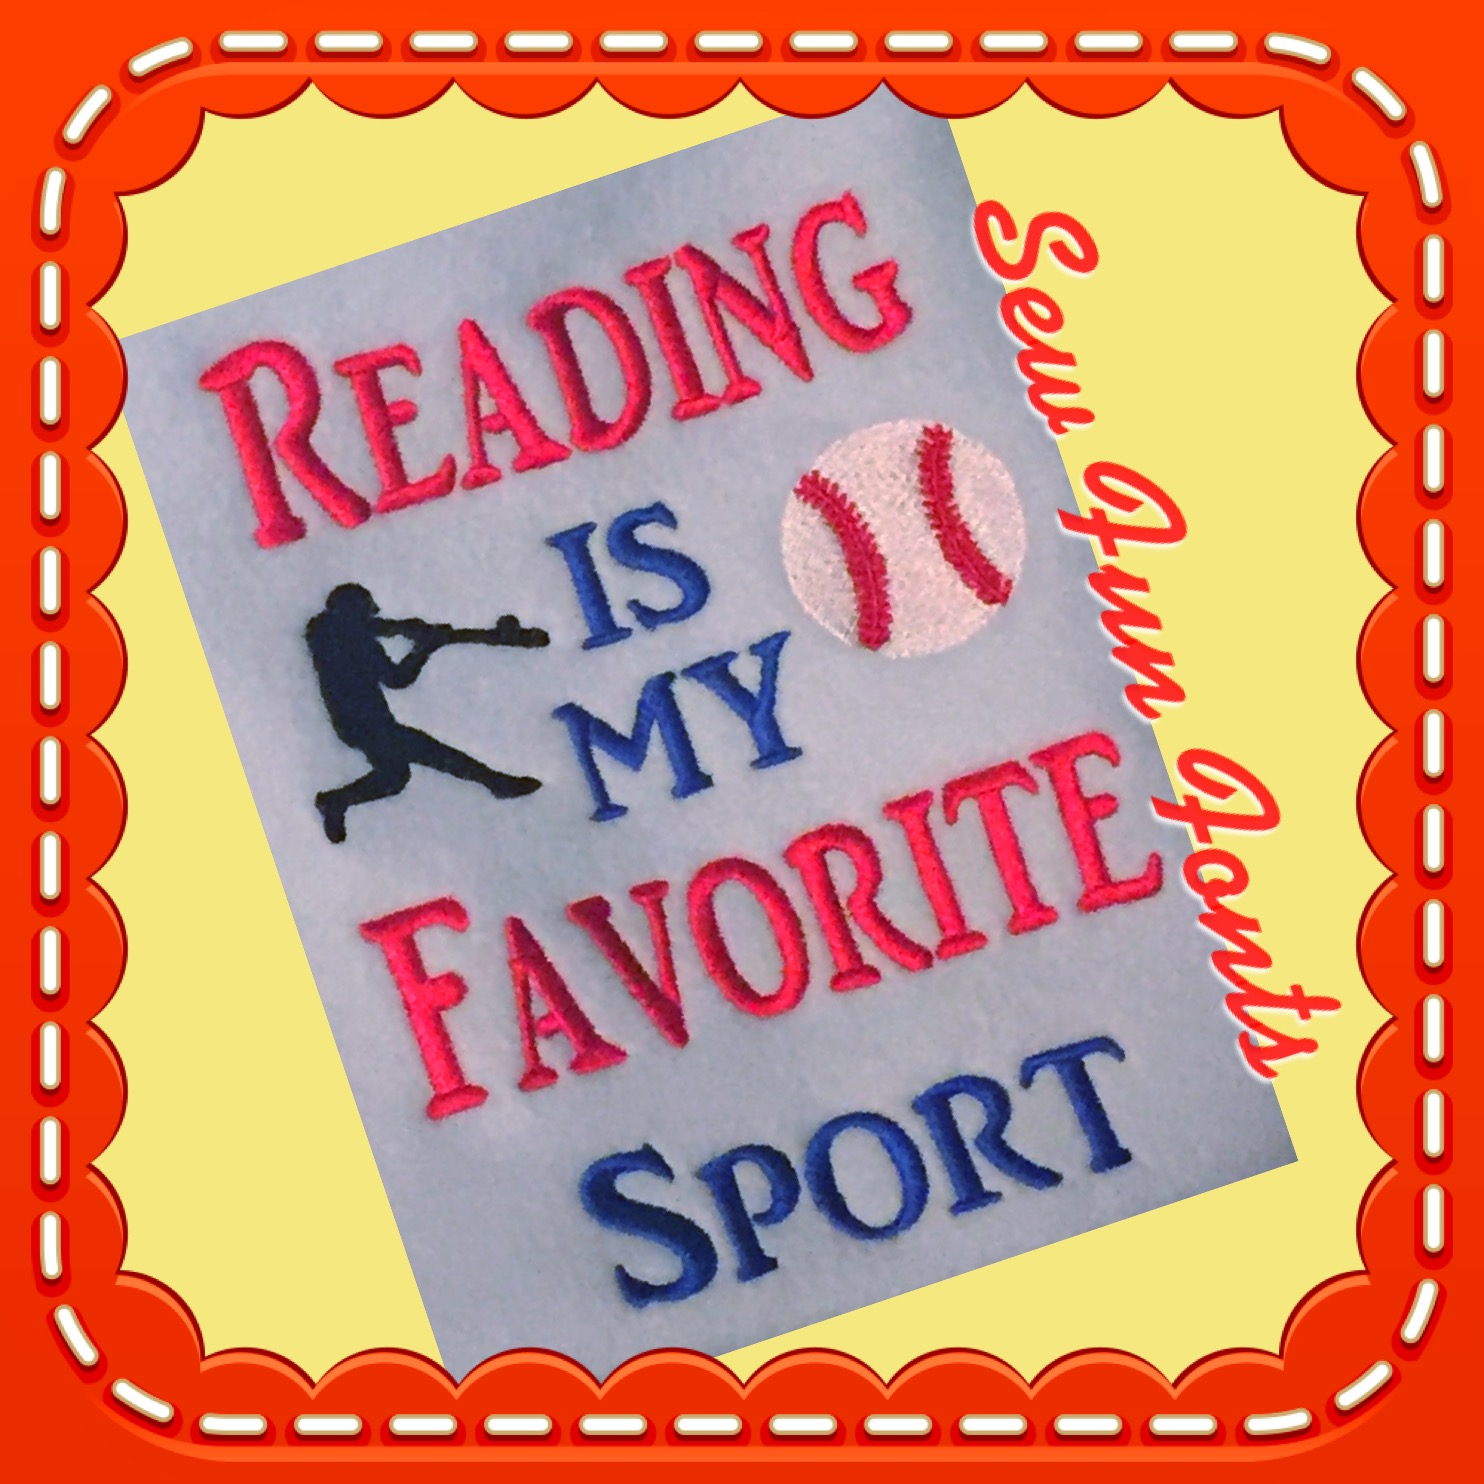 Reading Is My Favorite Sport Baseball Reading Saying Sew